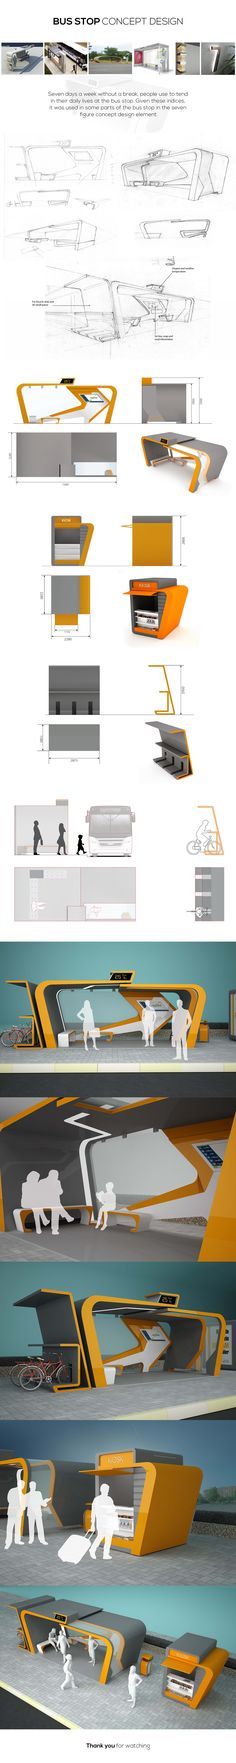 Seven days a week without a break, people use to tend in their daily lives at the bus stop. Given these indices, it was used in some parts of the bus stop in the seven figure concept design element.